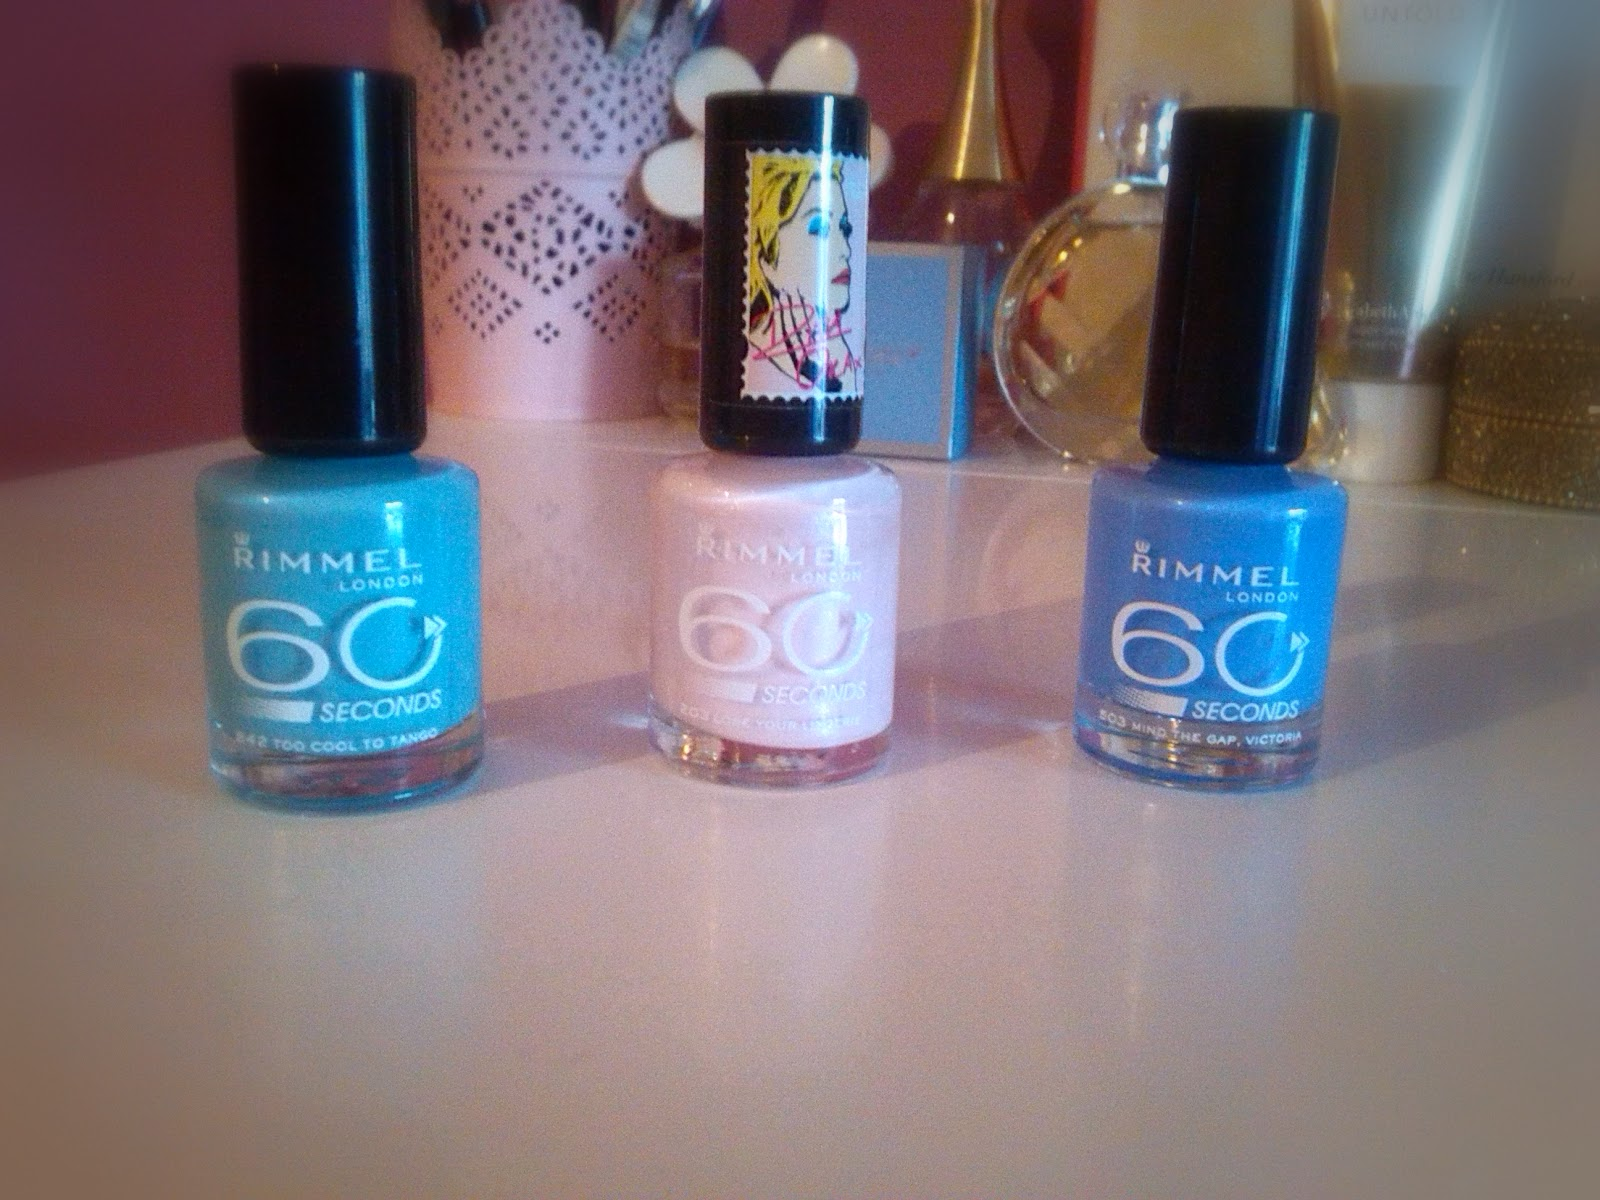 Picture of 3 bottles of Rimmel Nail Varnish